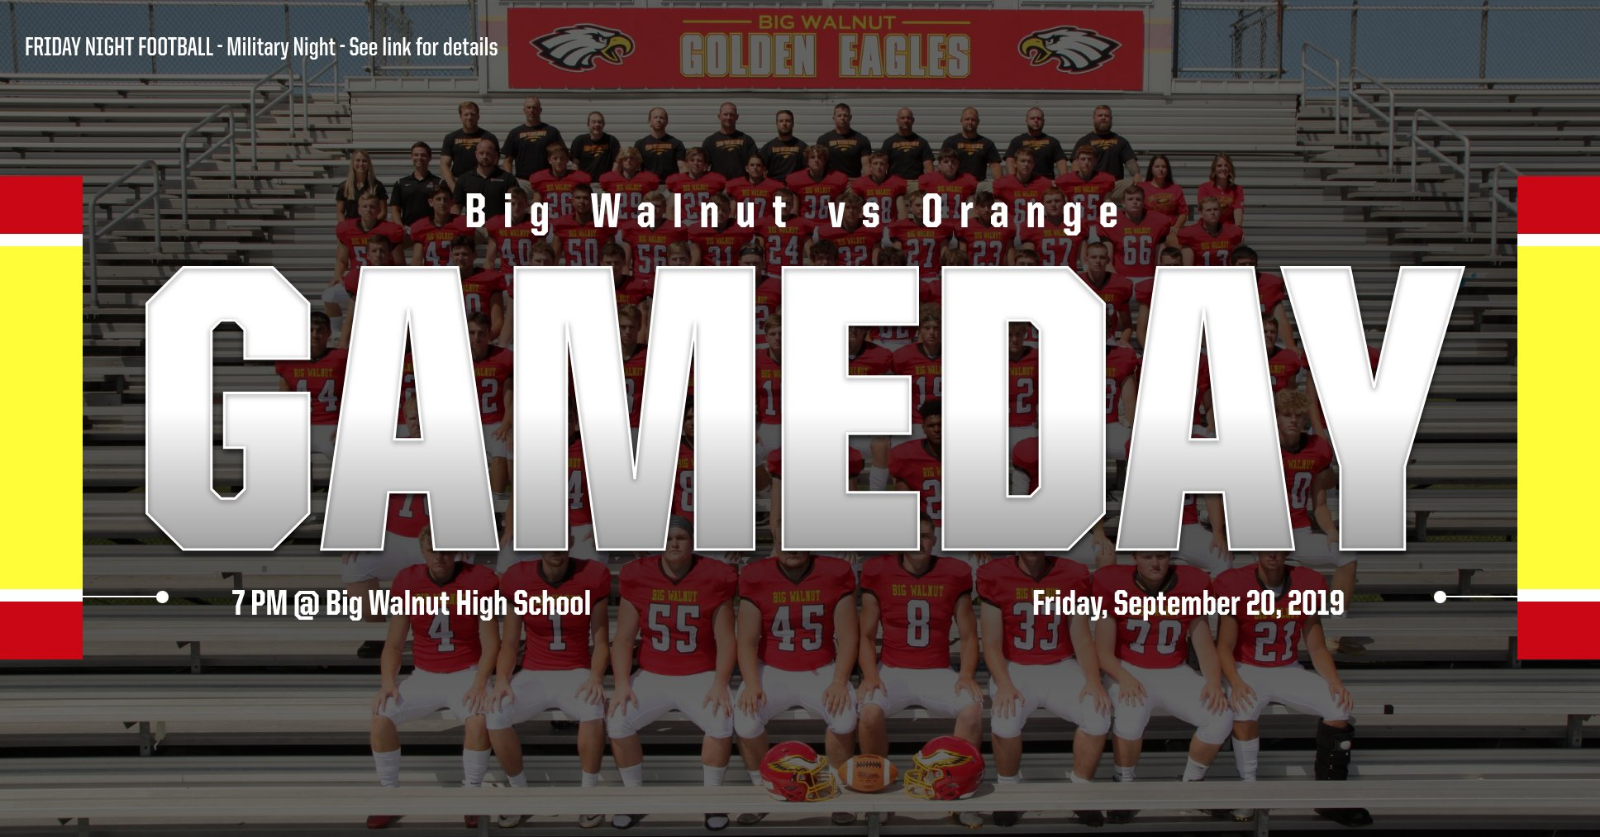 Friday Night Football – Big Walnut vs Orange – Military Night – See link for details